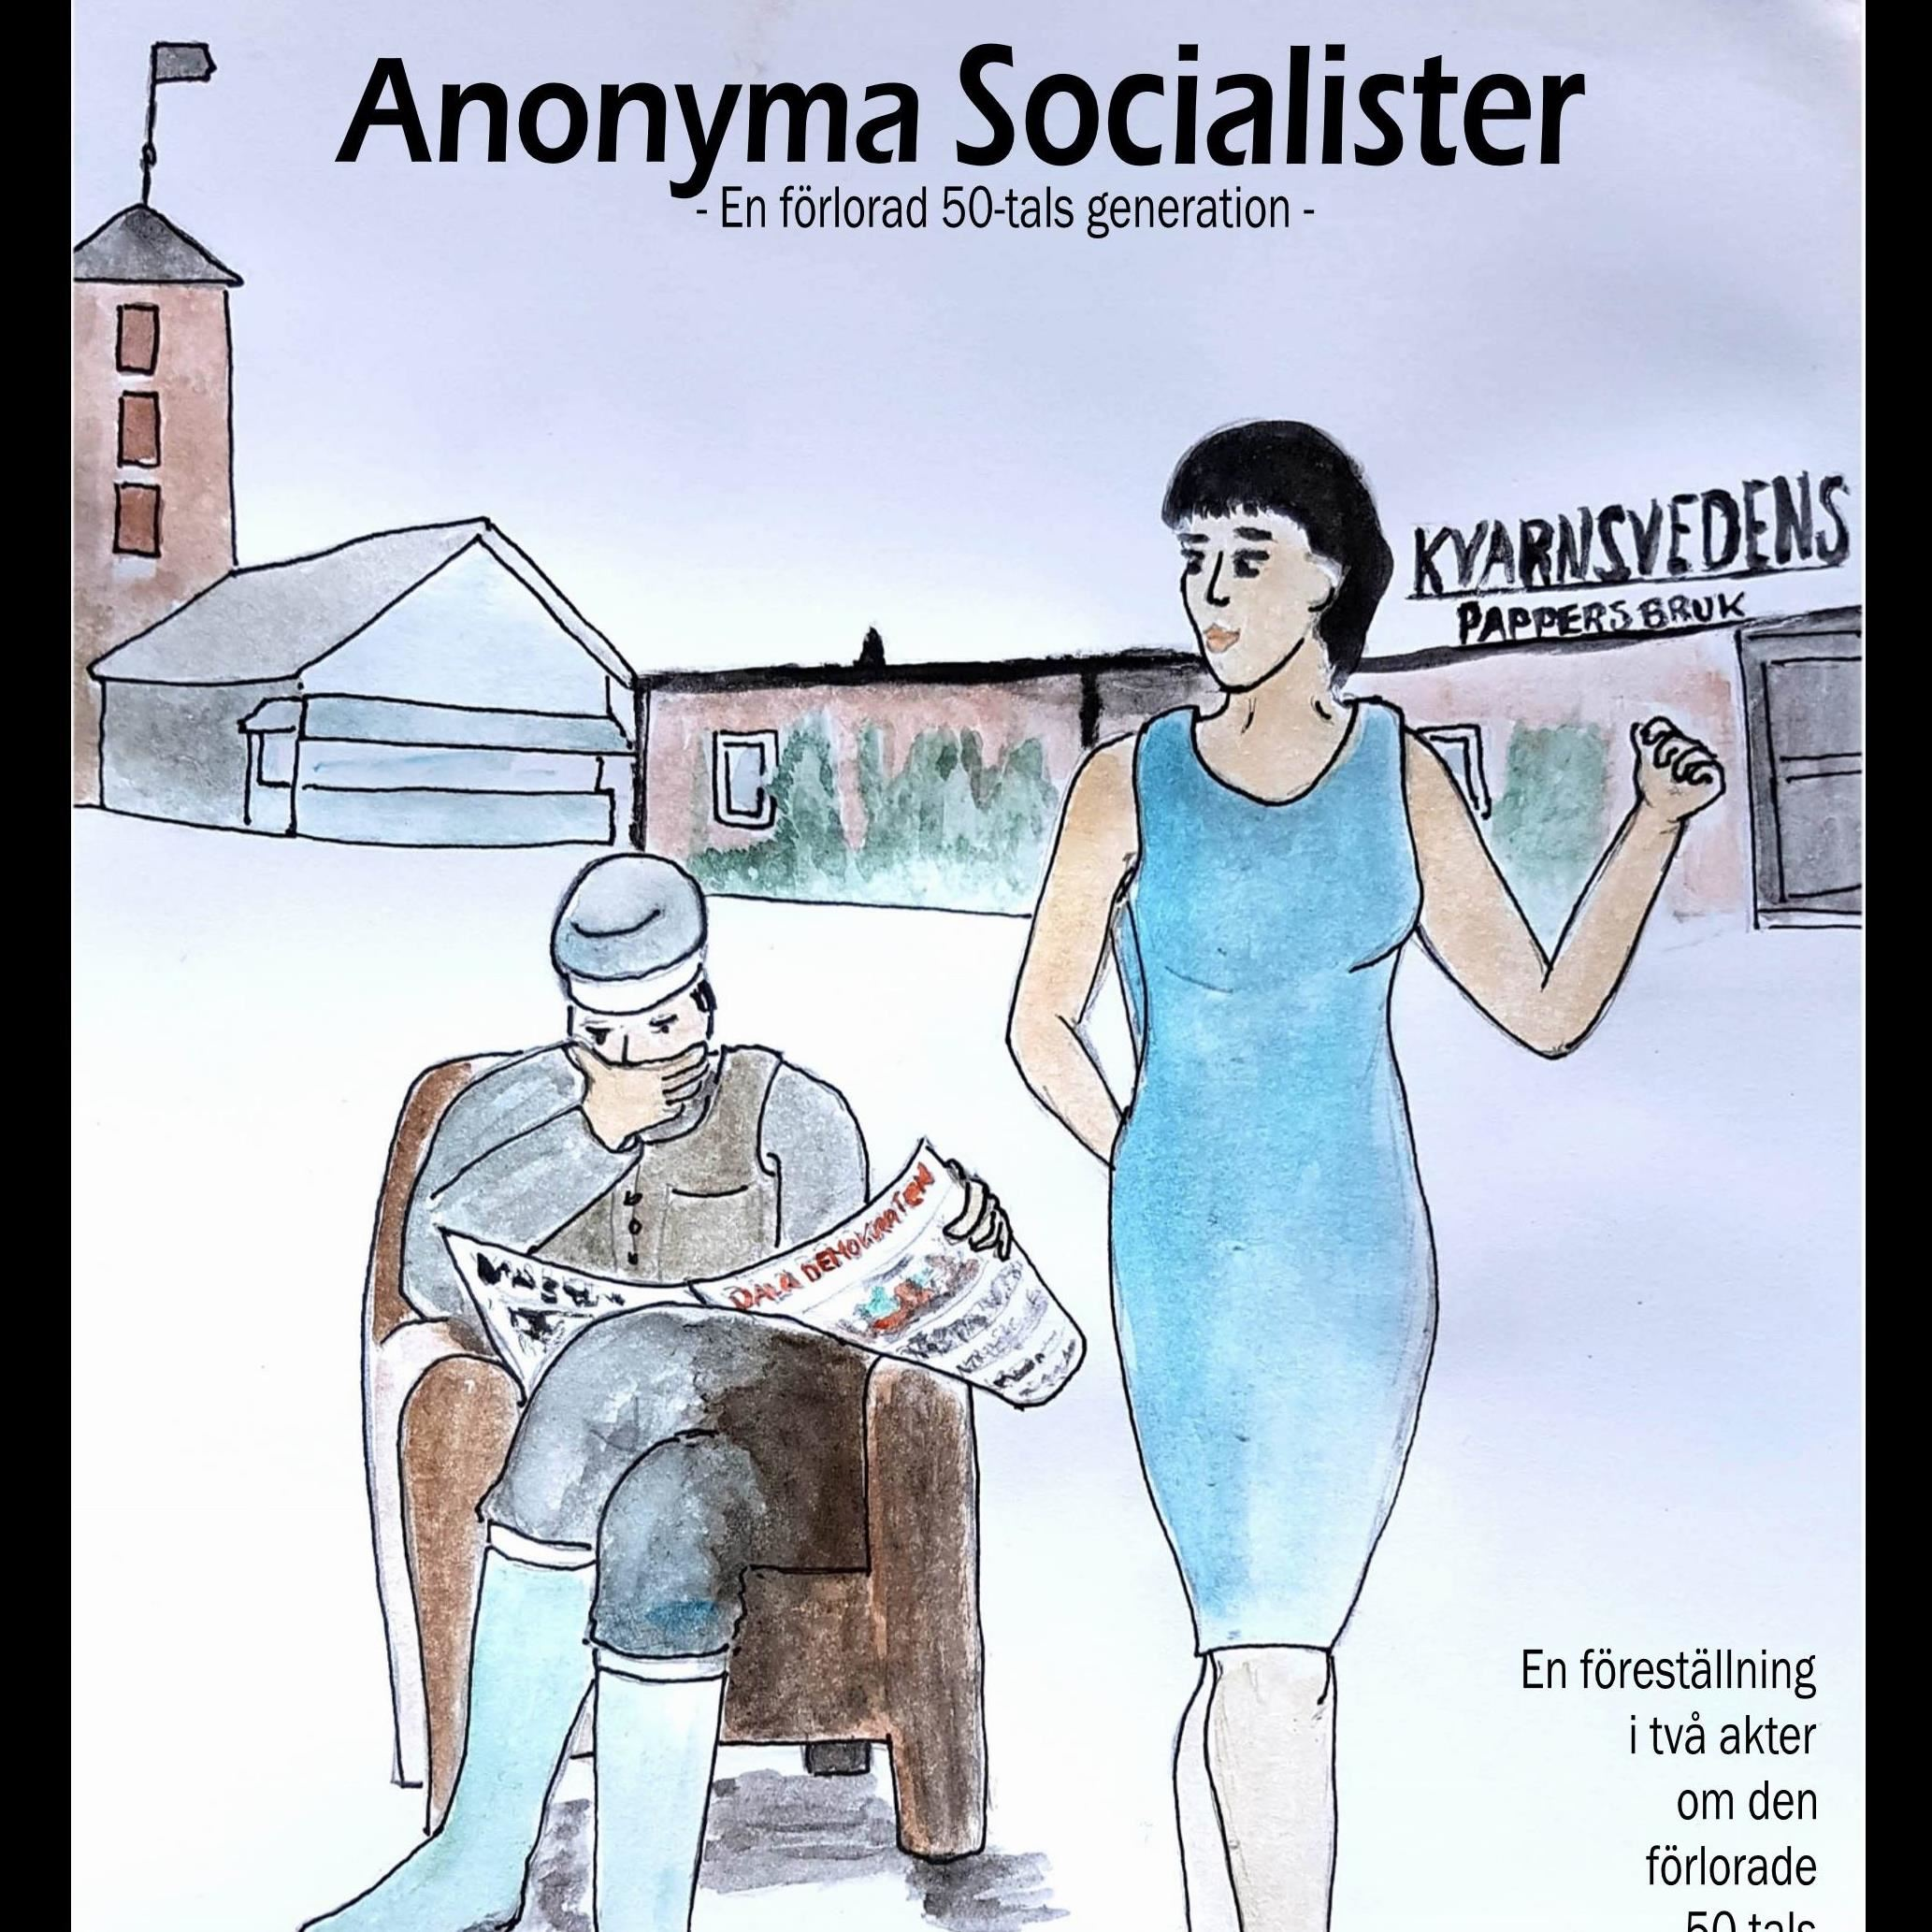 Anonyma Socialister